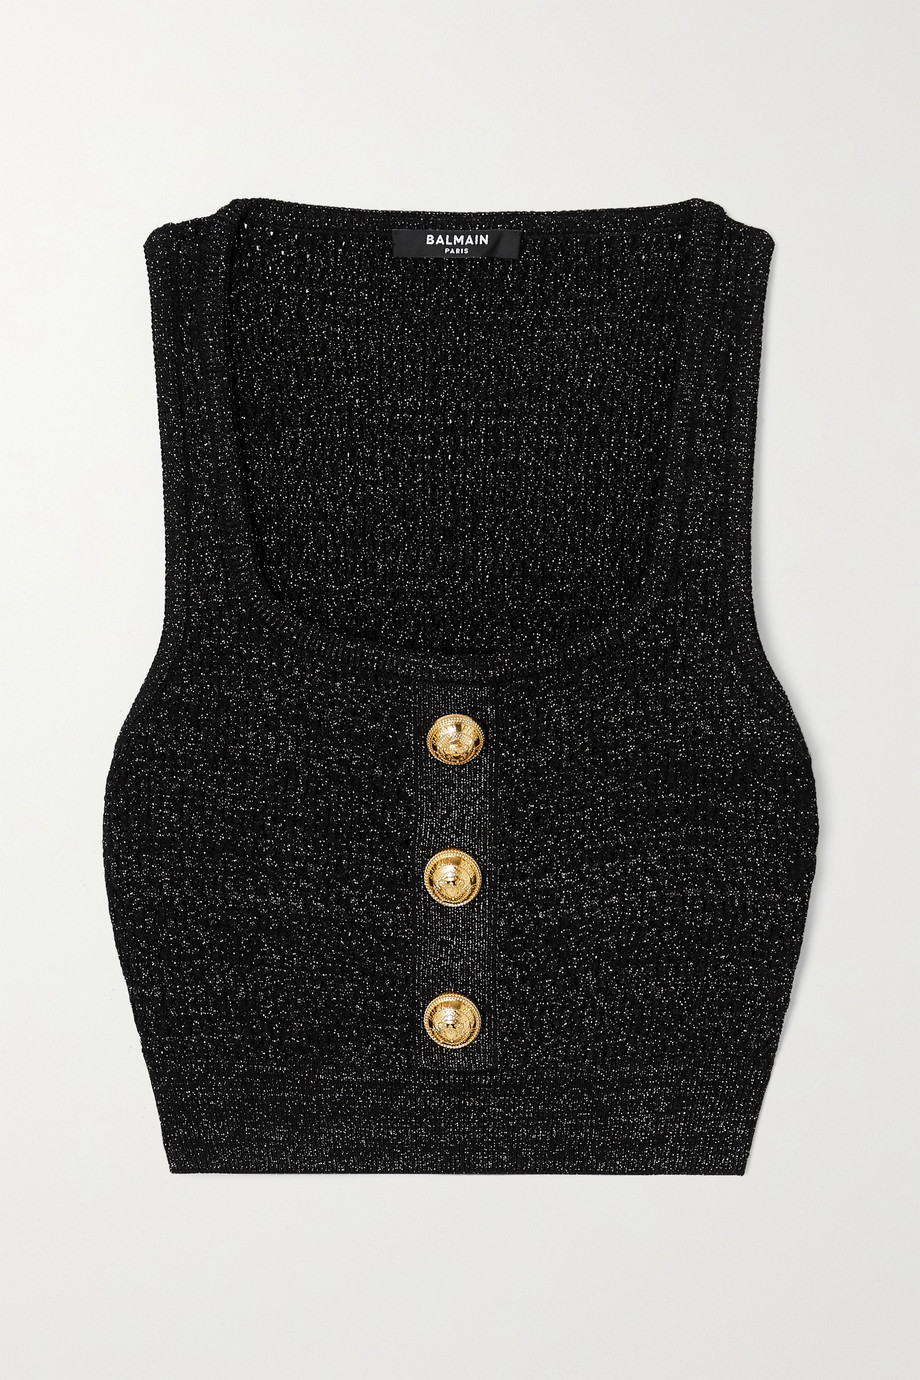 Balmain Cropped button-embellished metallic ribbed-knit top